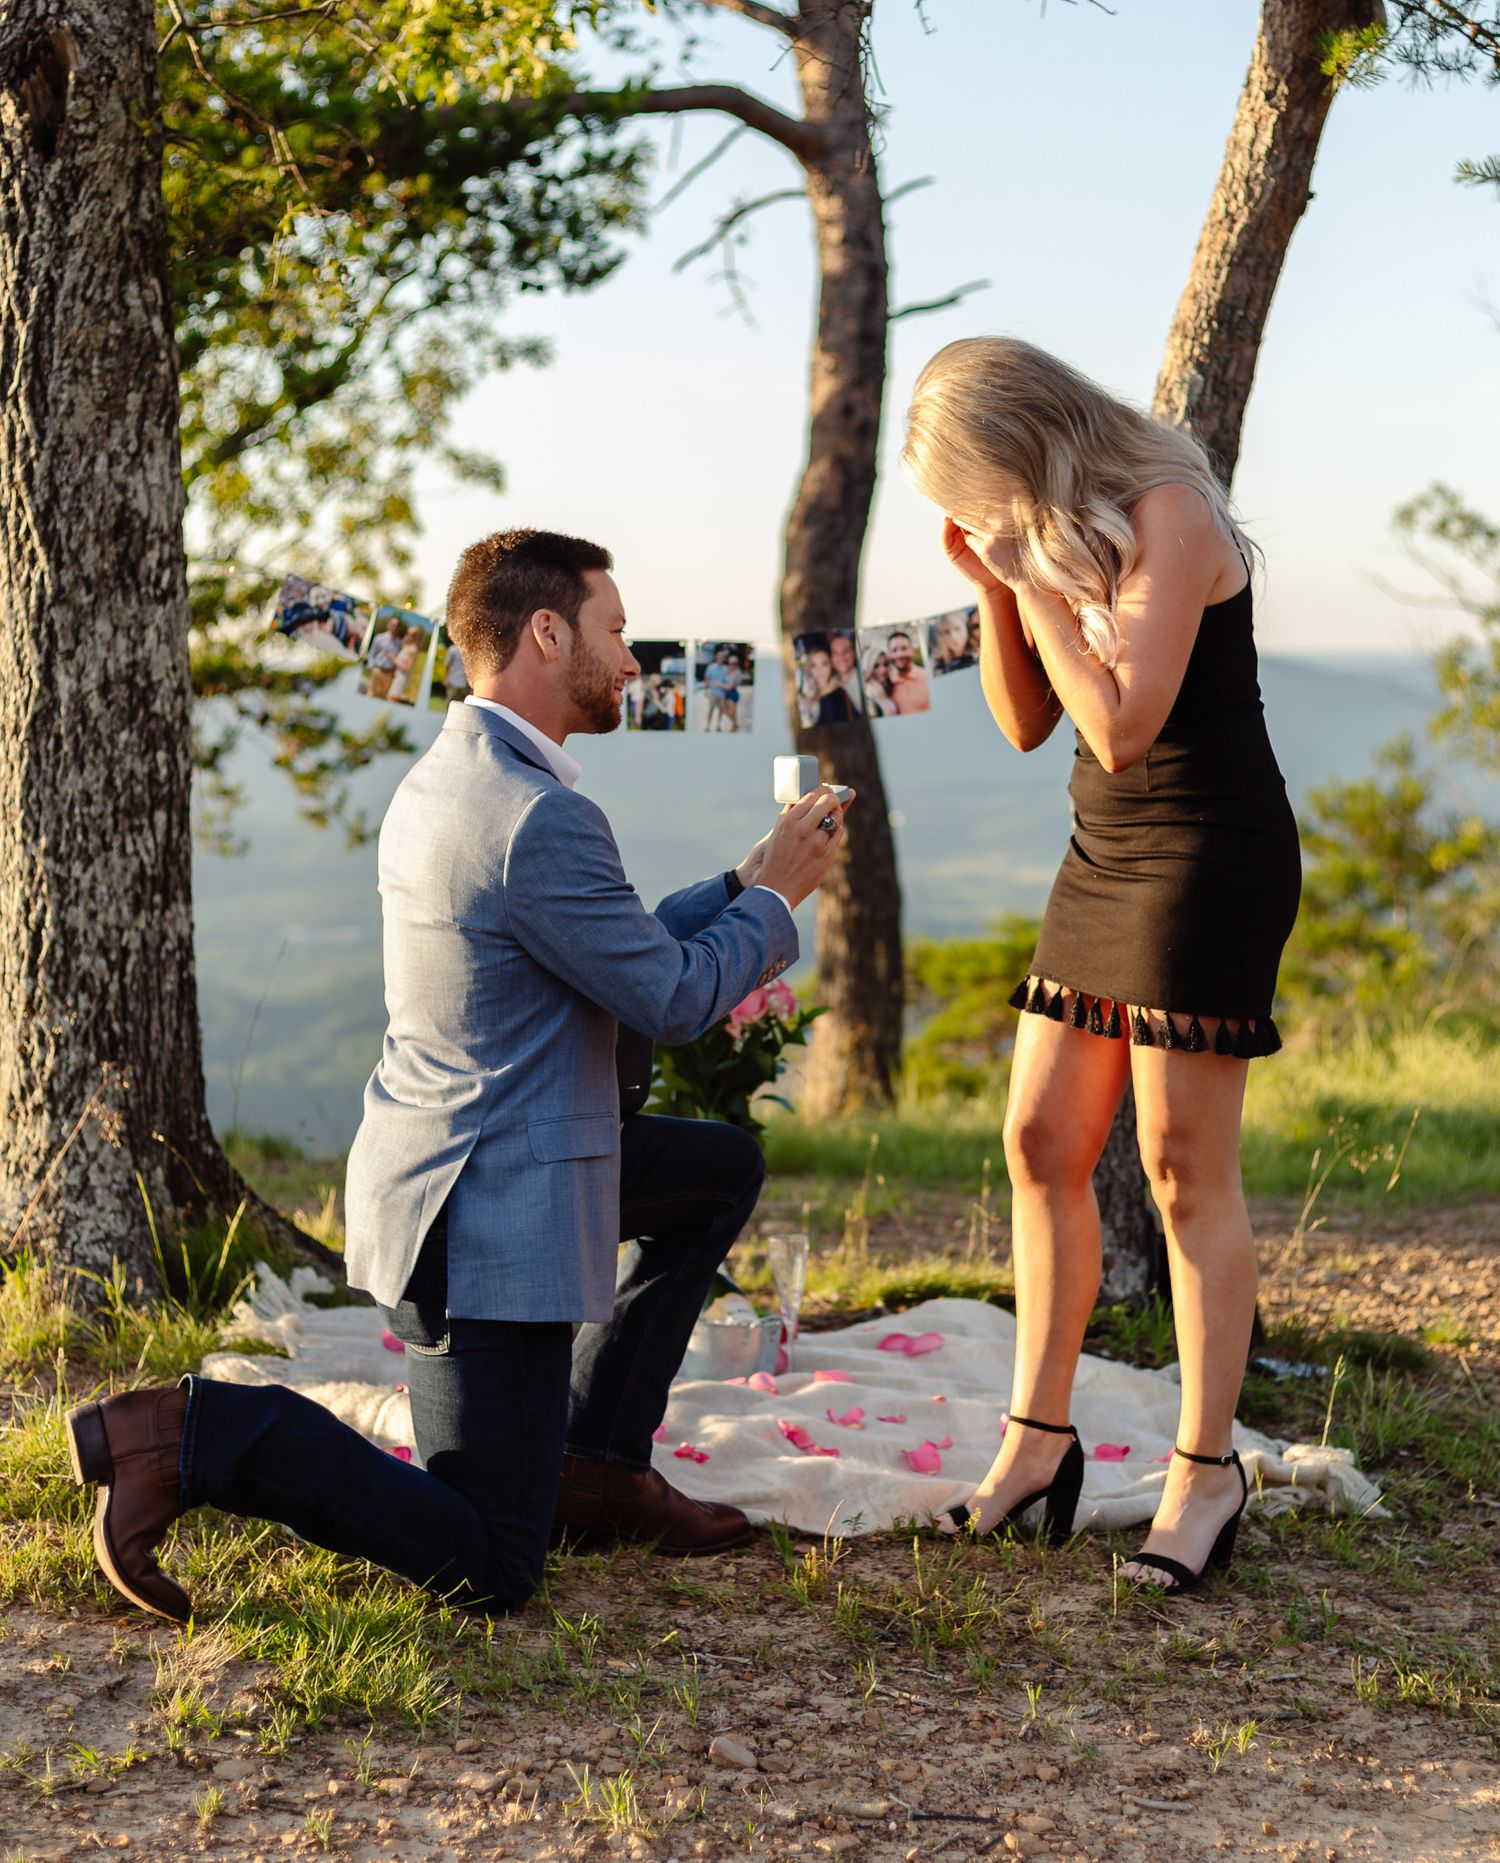 A man wearing a blue suit proposes to a woman wearing a black dress at sunset.